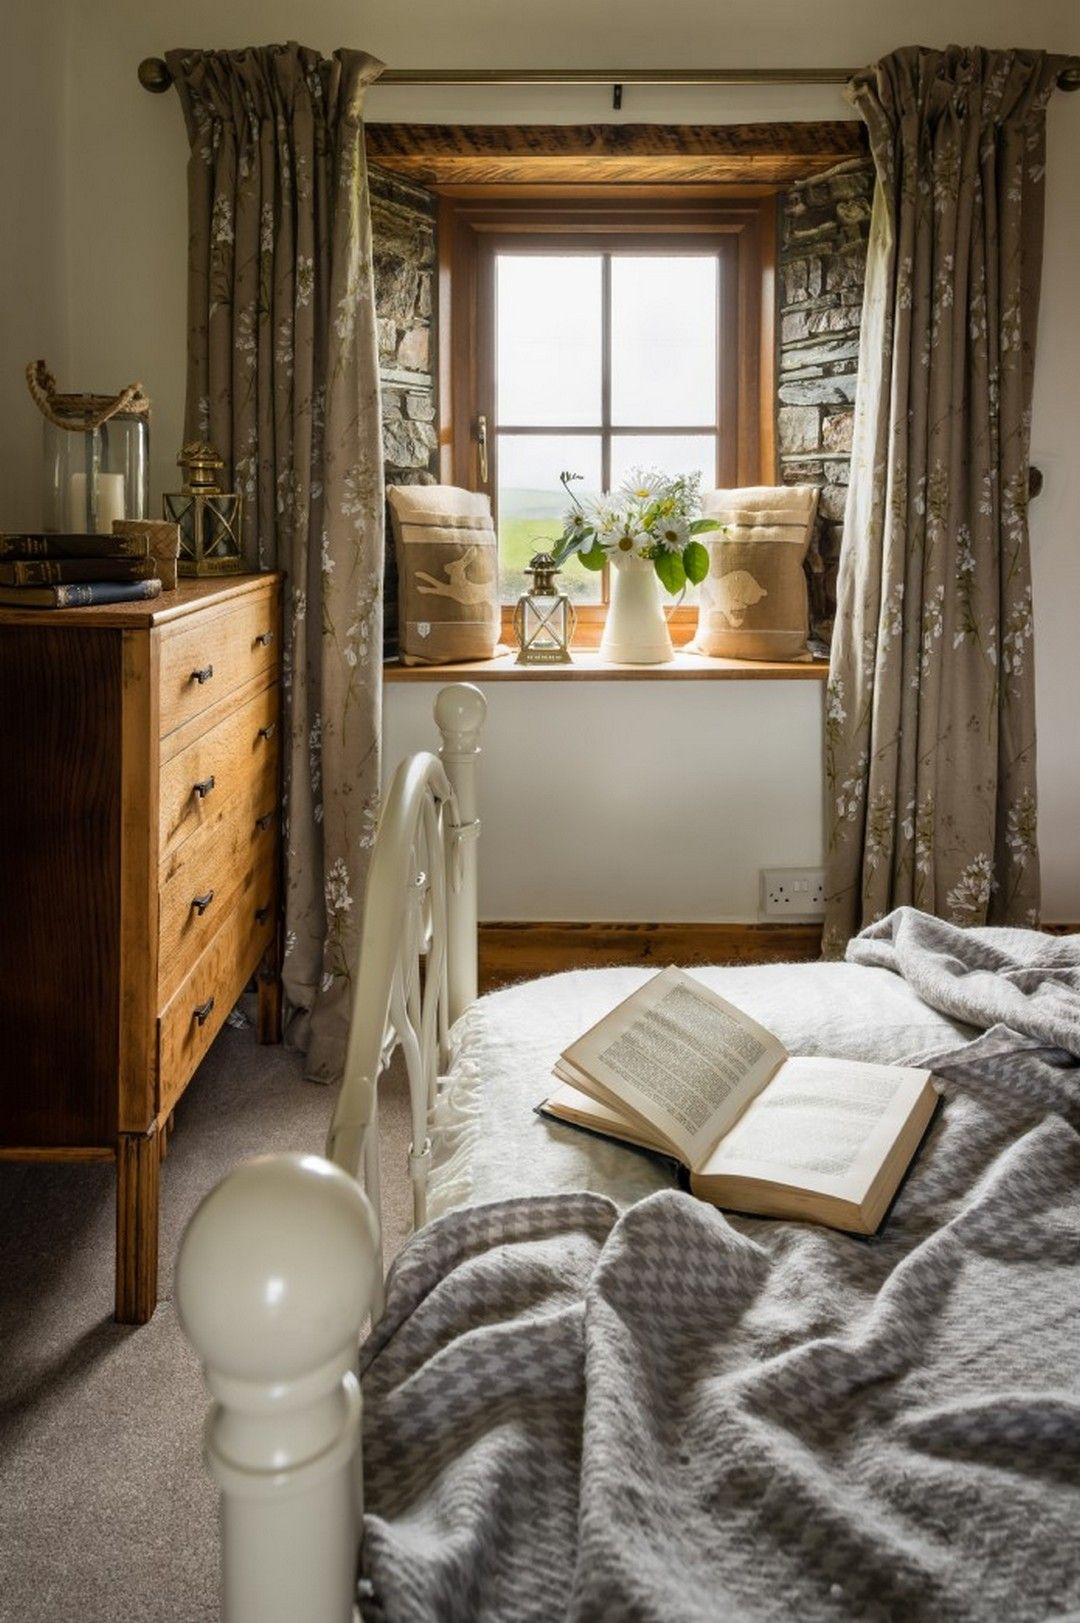 100 Cozy And Cool Cottage Style Interior Design Decorating Ideas Home Decor Ideas And Tips Cottage Style Interiors Country Cottage Bedroom Country House Decor